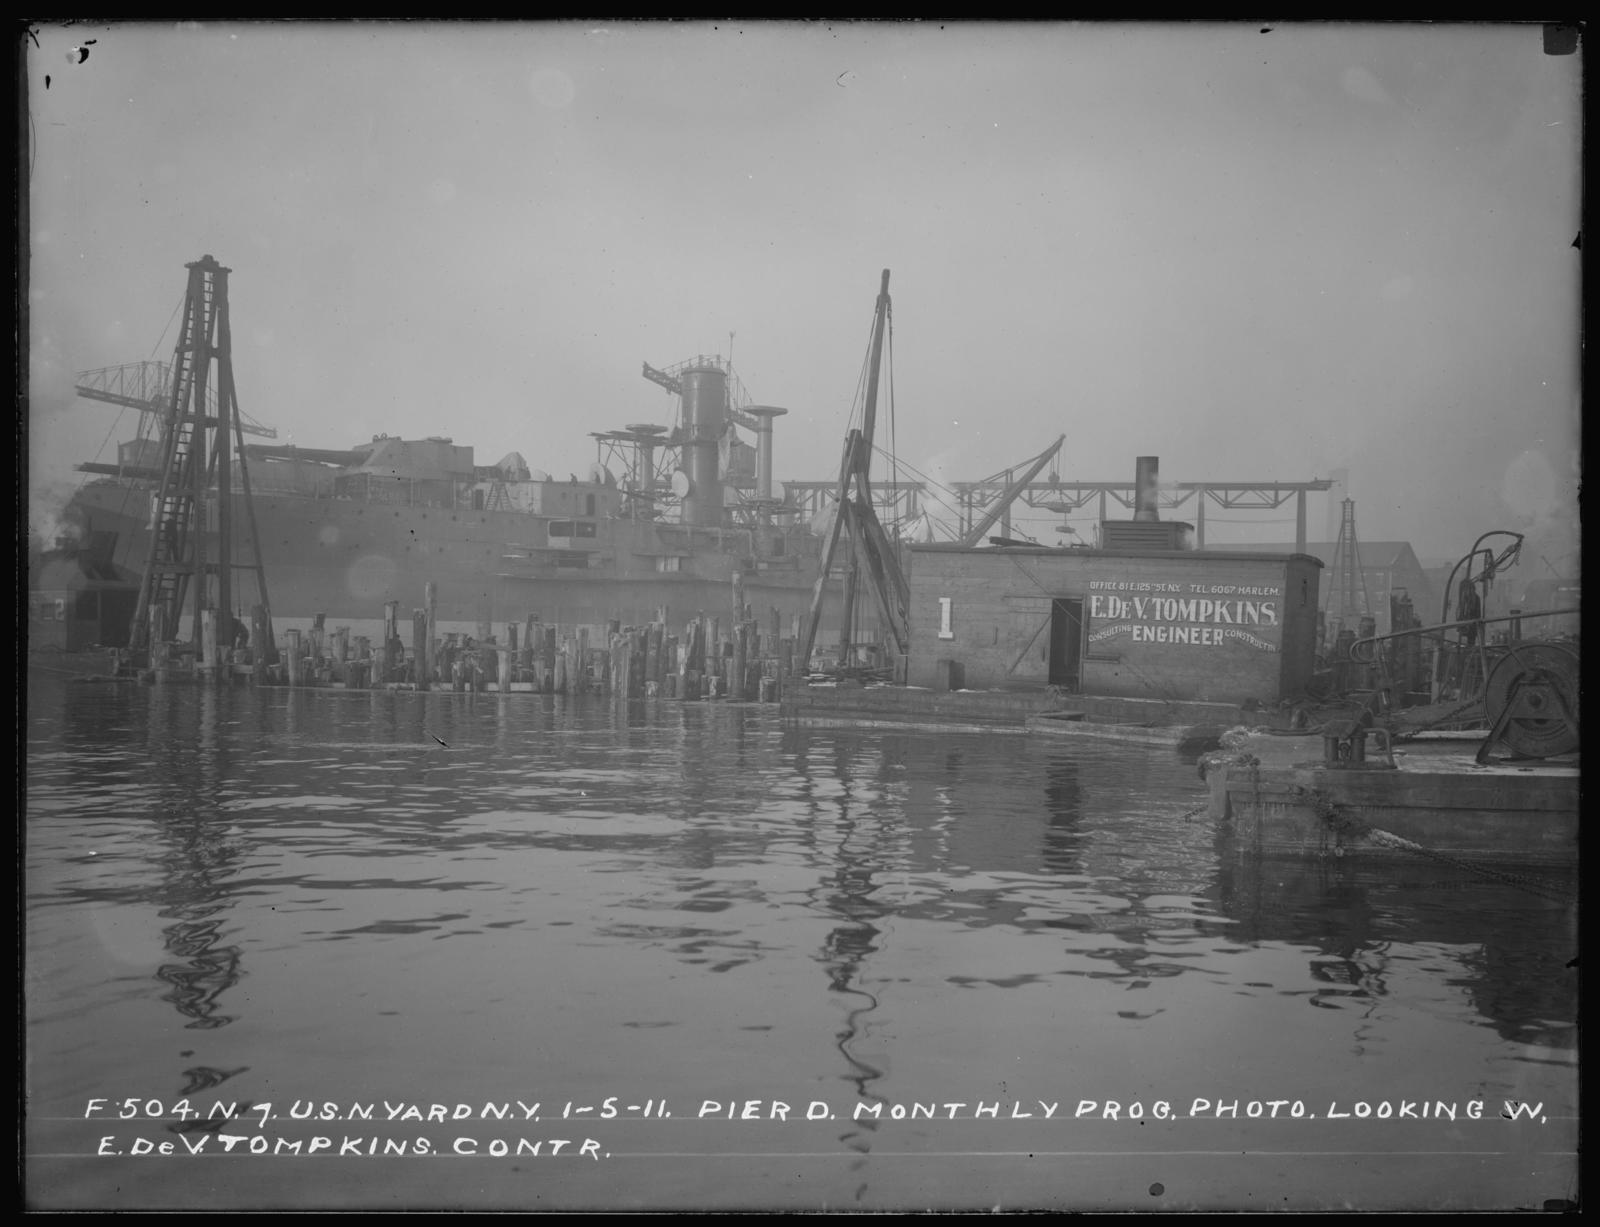 Pier D, Monthly Progress Photo, Looking West, E. De.  V. Tompkins, Contactor